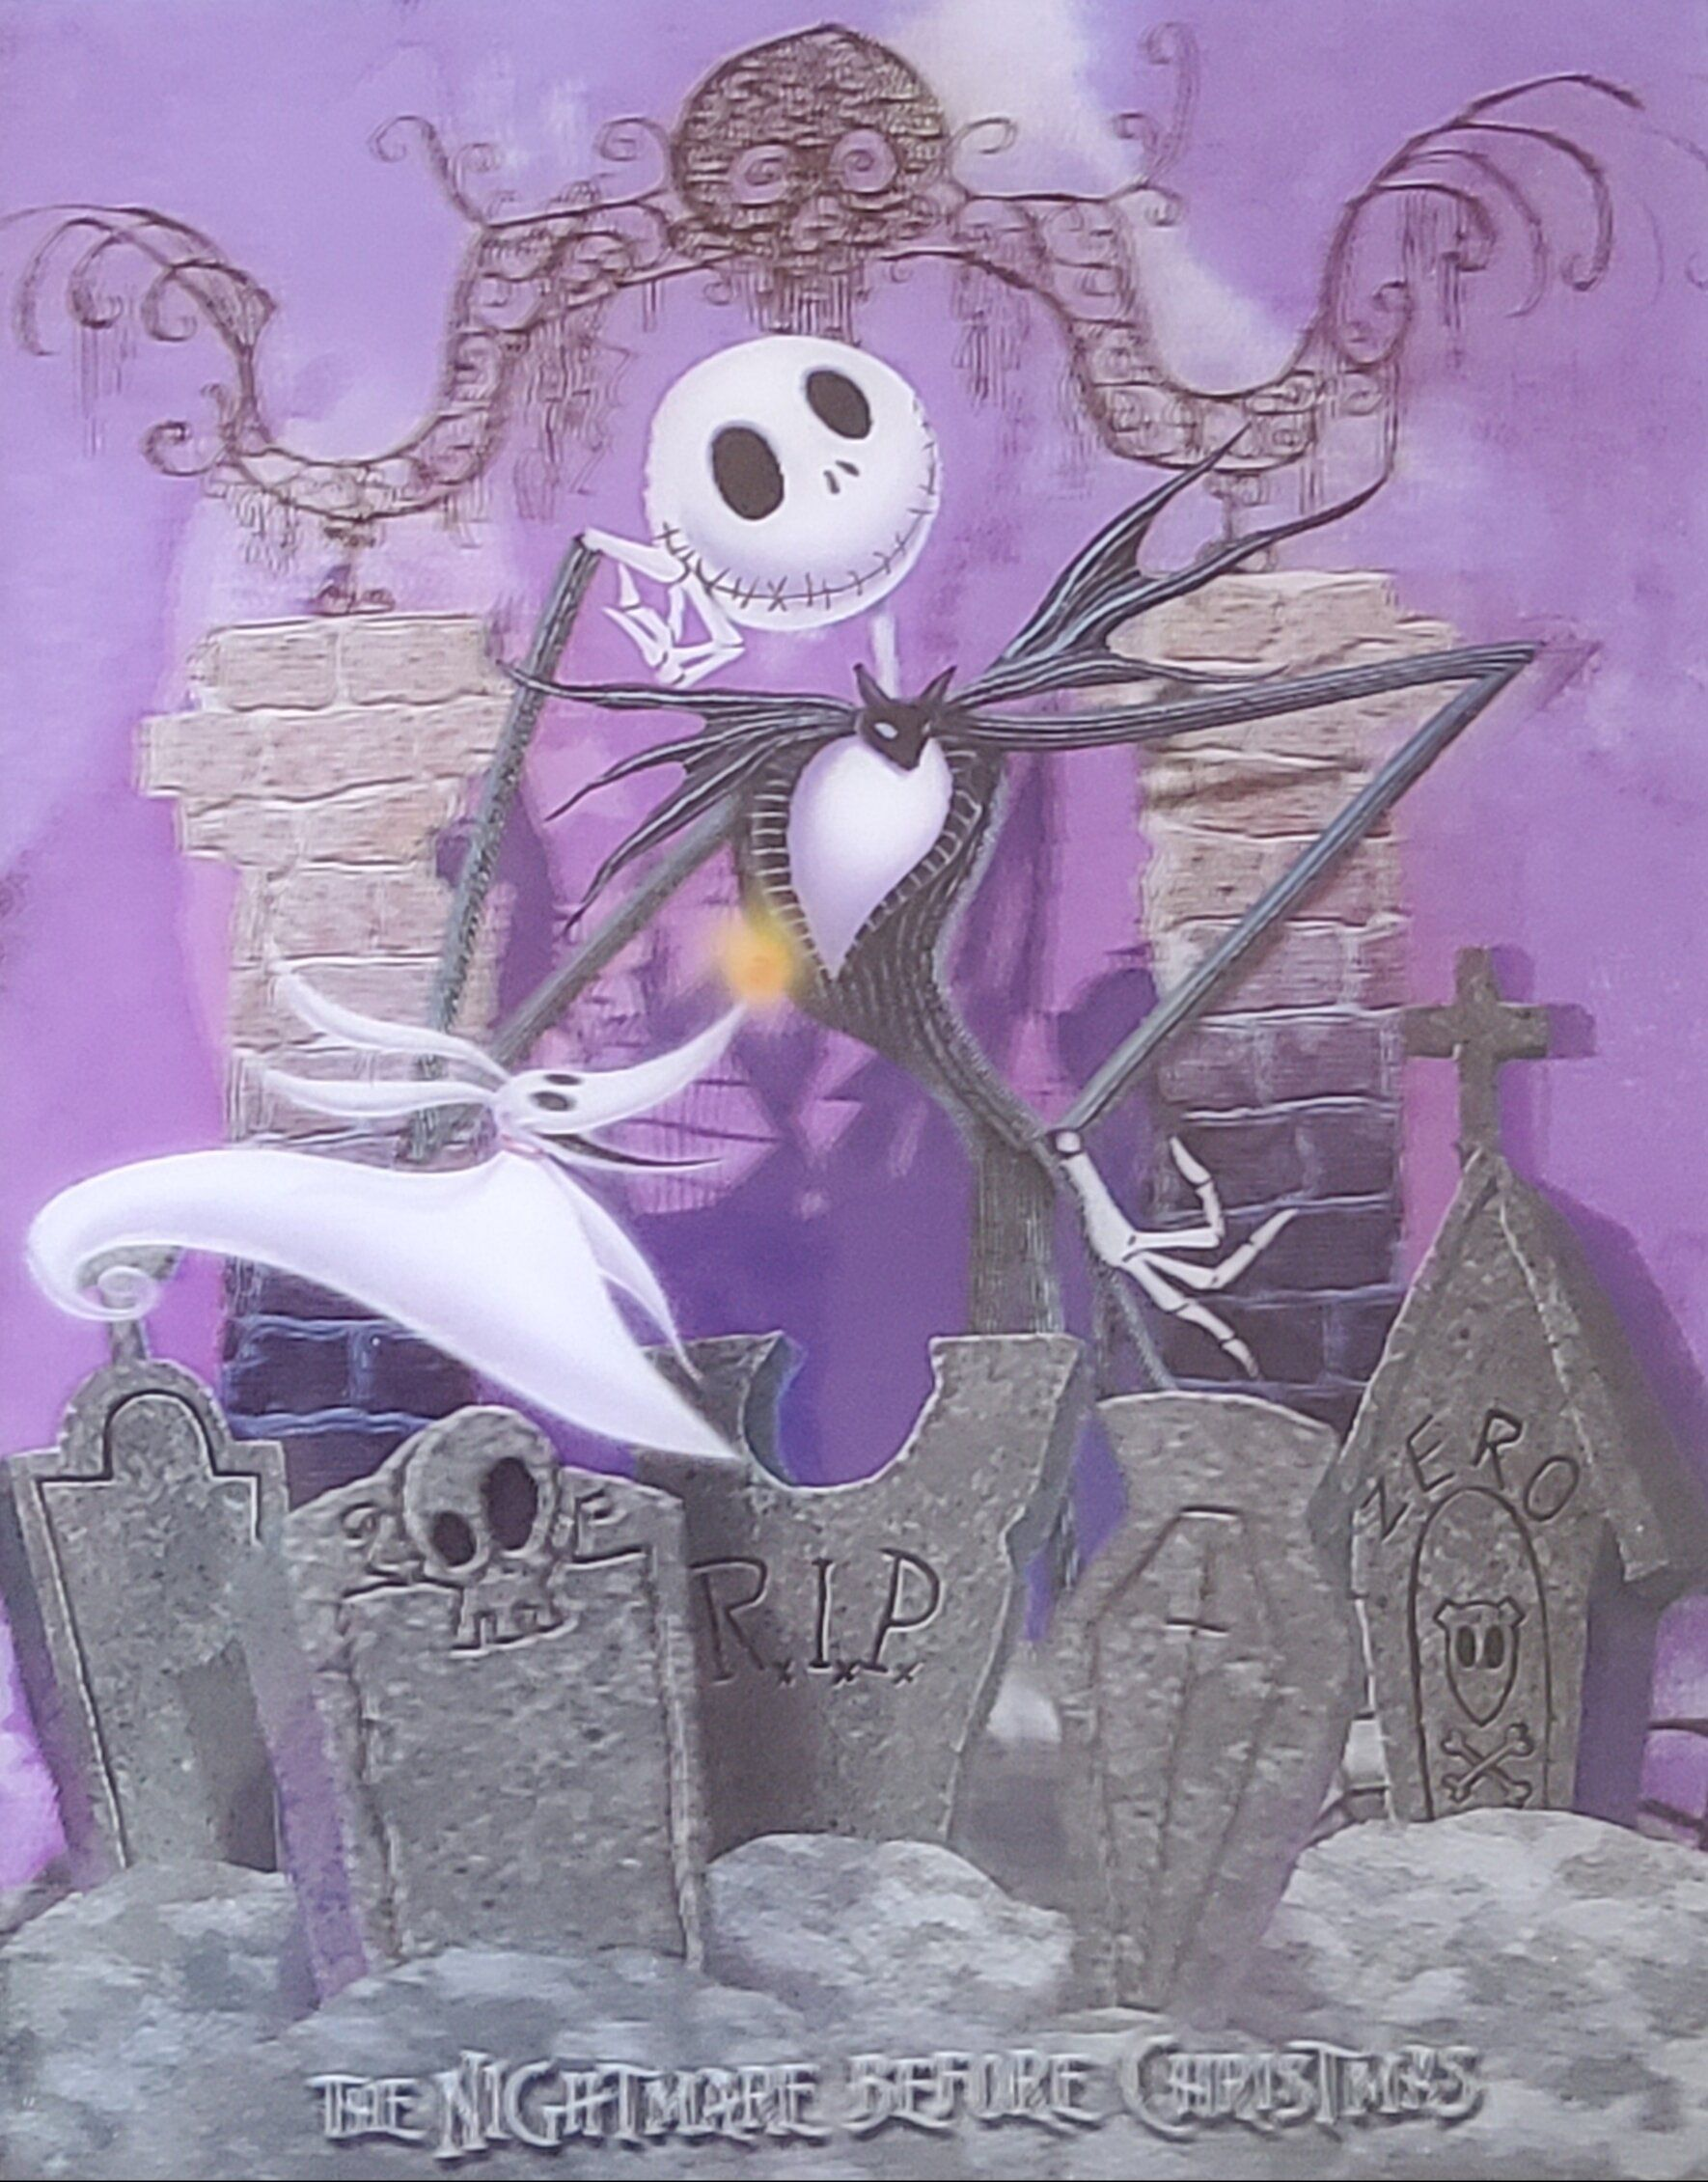 Nightmare Before Christmas 3d 2020 The Nightmare Before Christmas 3D Lenticular Poster — Shop Online